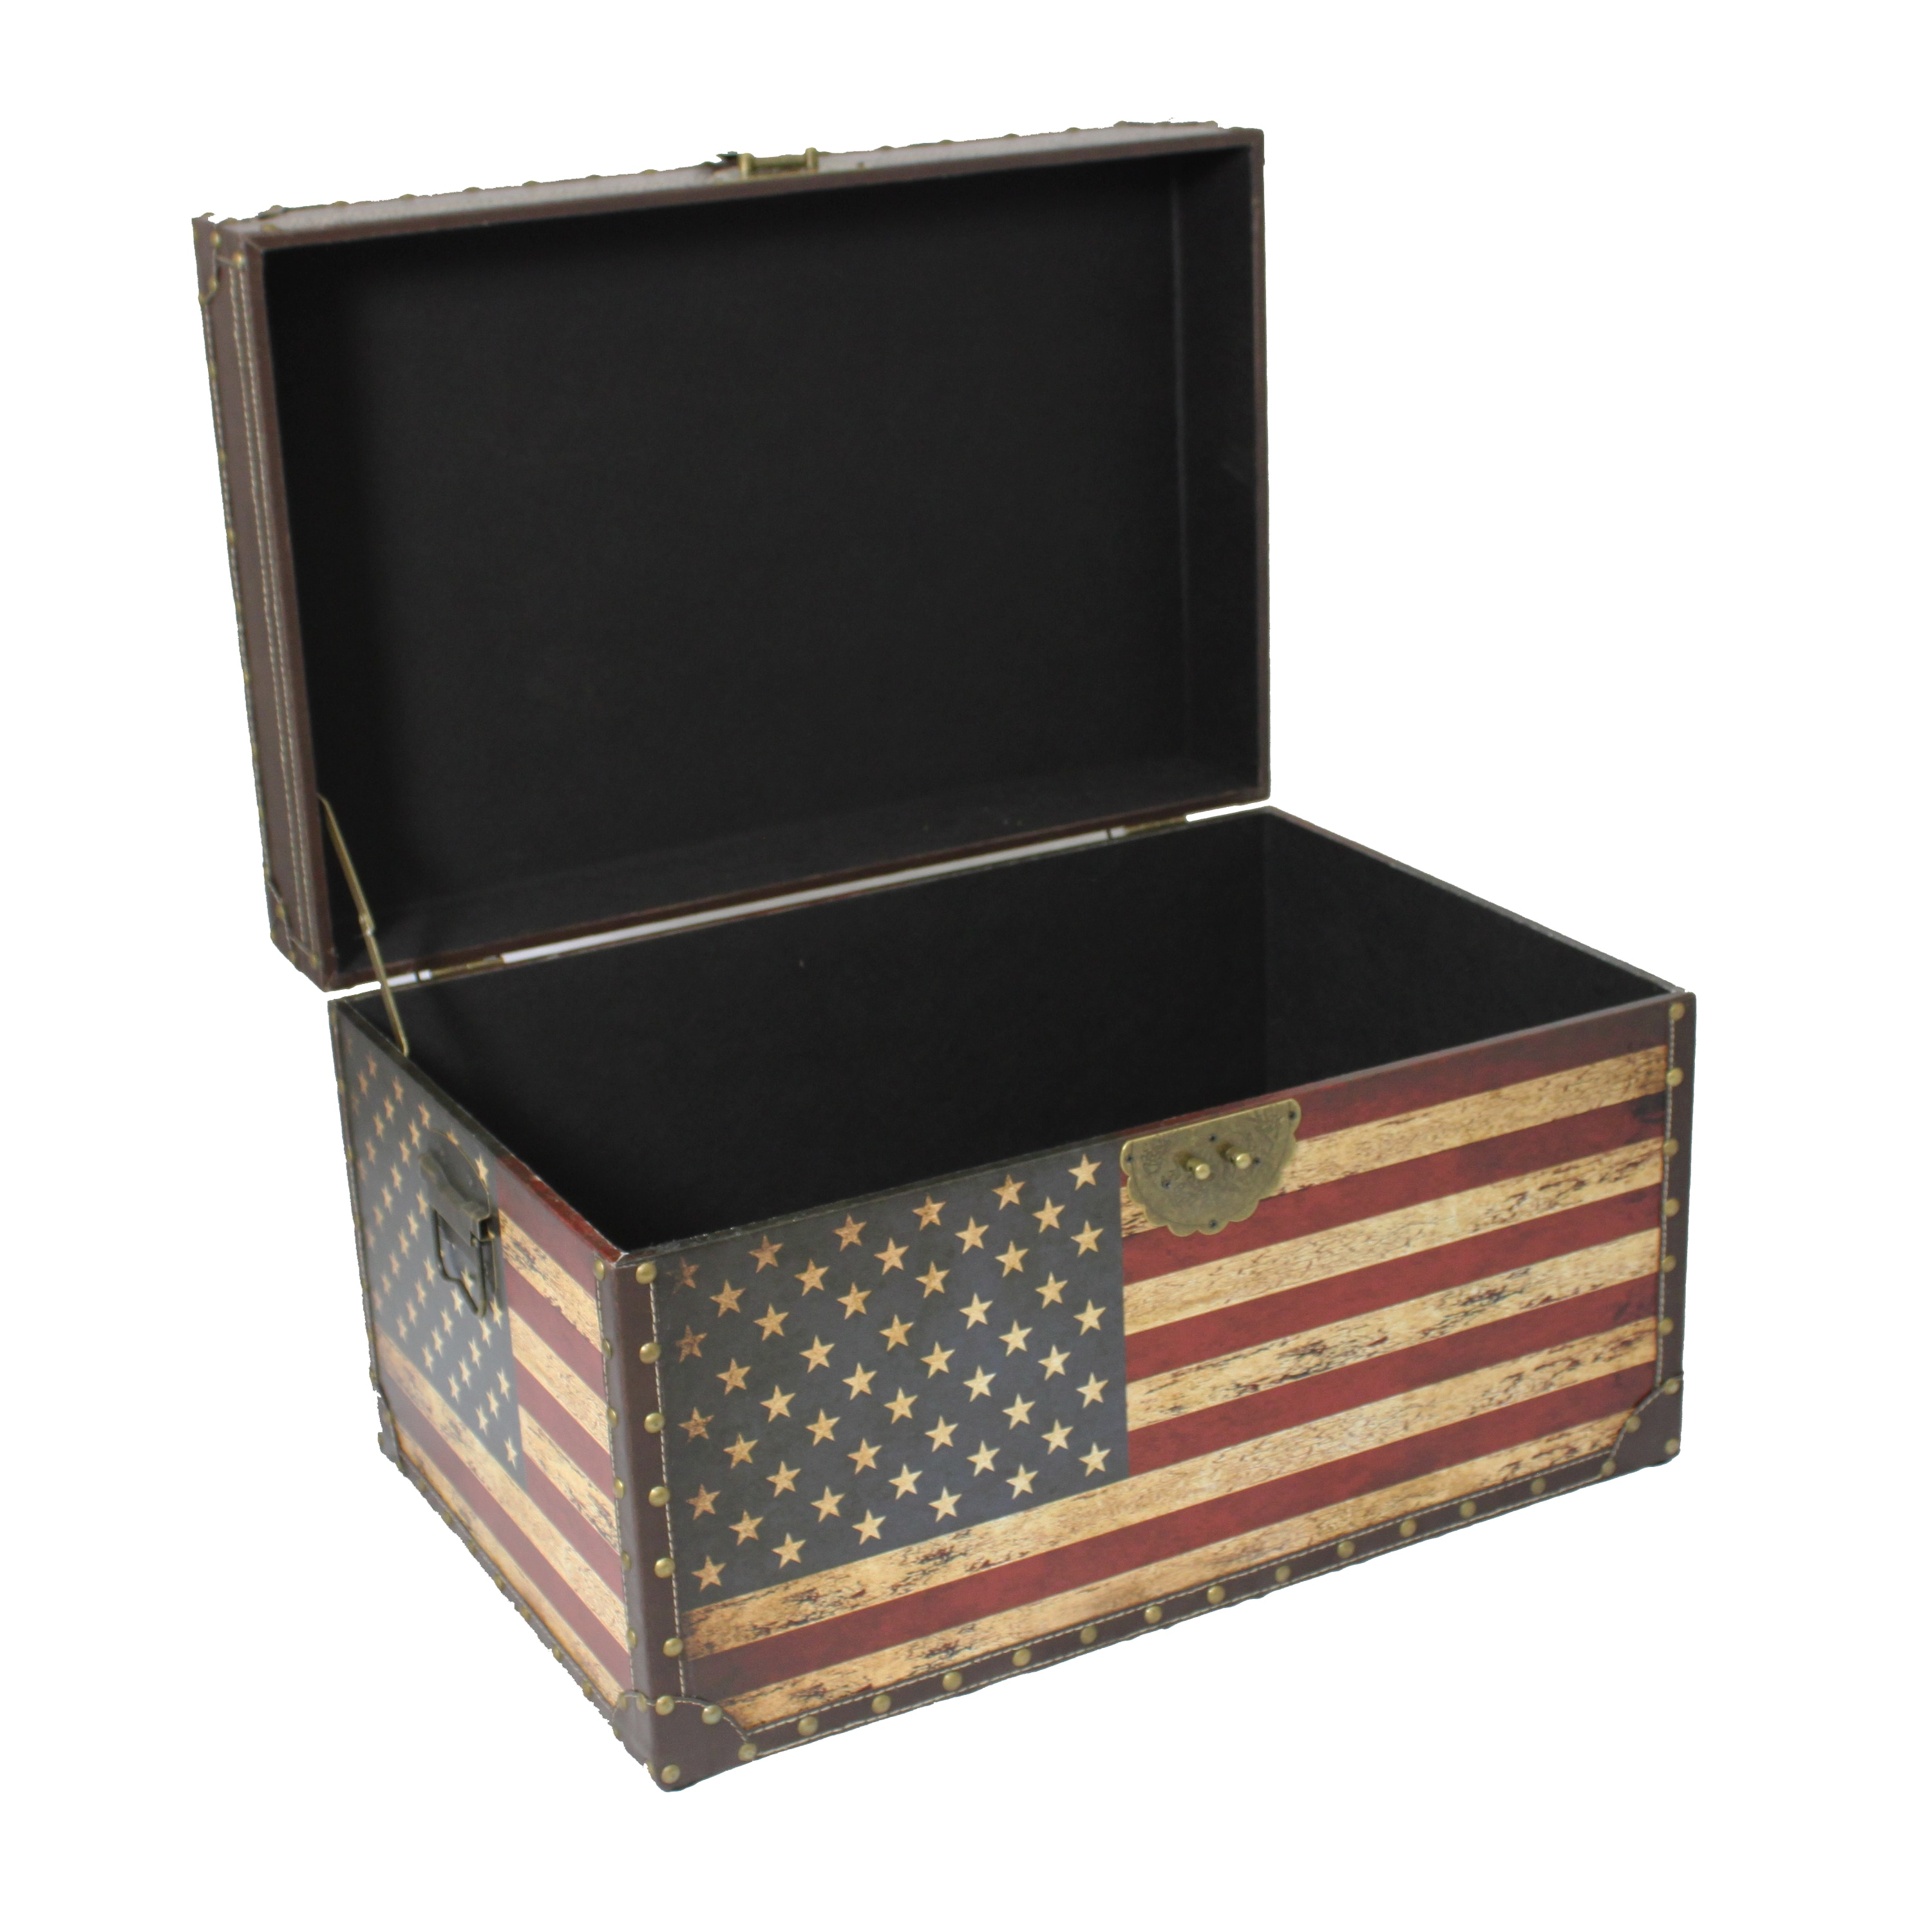 Antique American Flag Decorative Trunk Cases and Storage Accent Decor -  Free Shipping Today - Overstock.com - 15736685